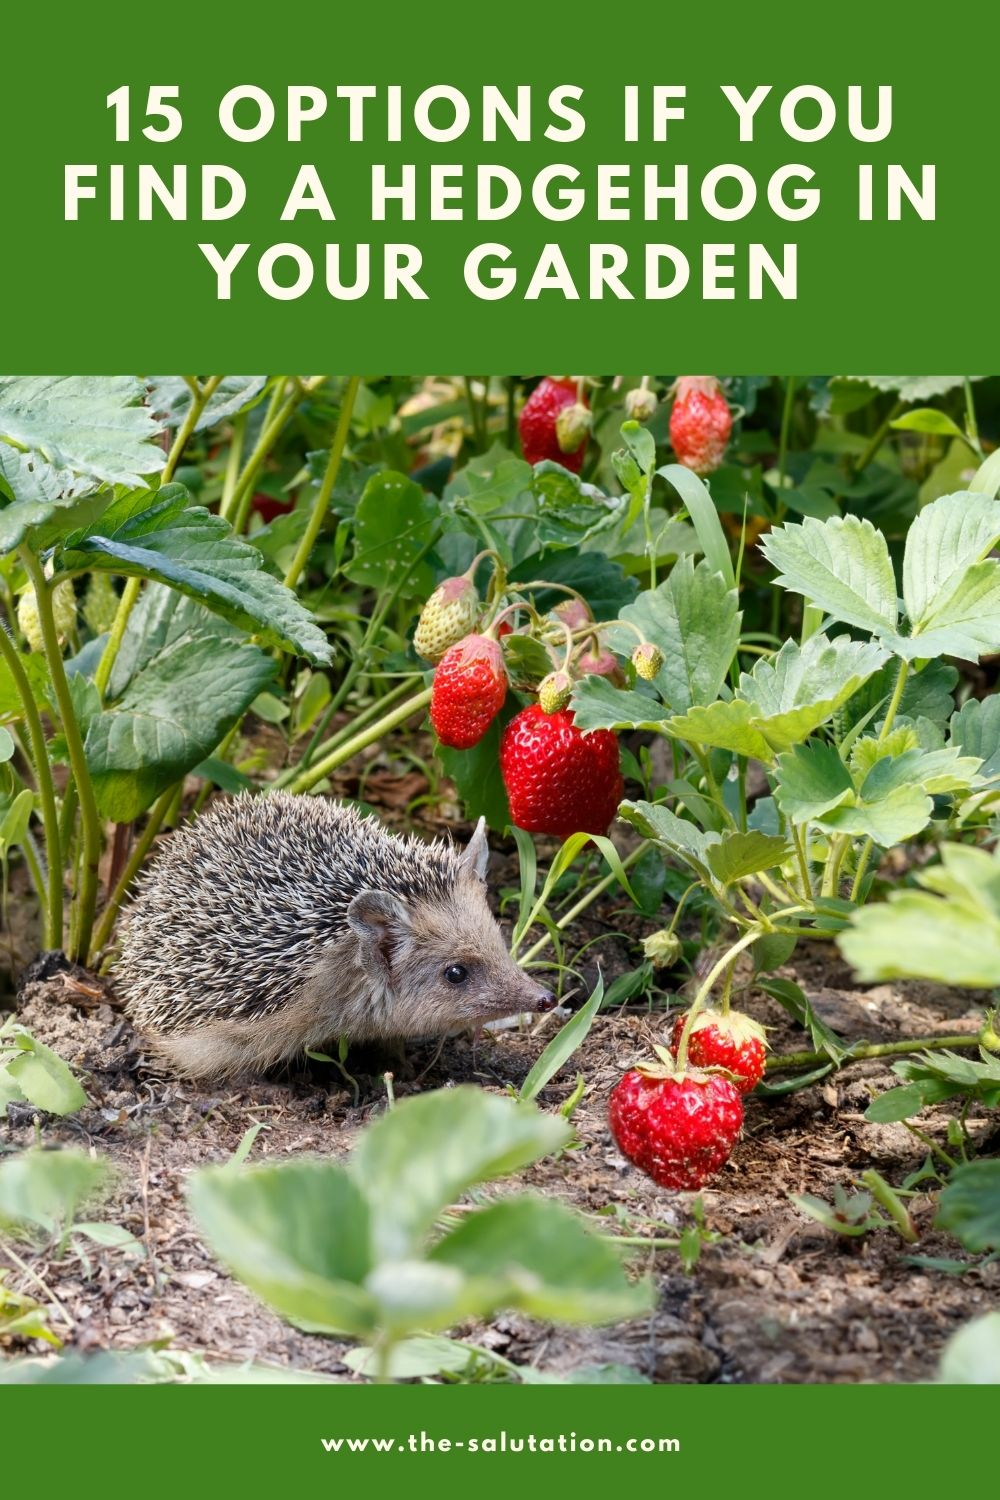 15 Options If You Find a Hedgehog in Your Garden 1